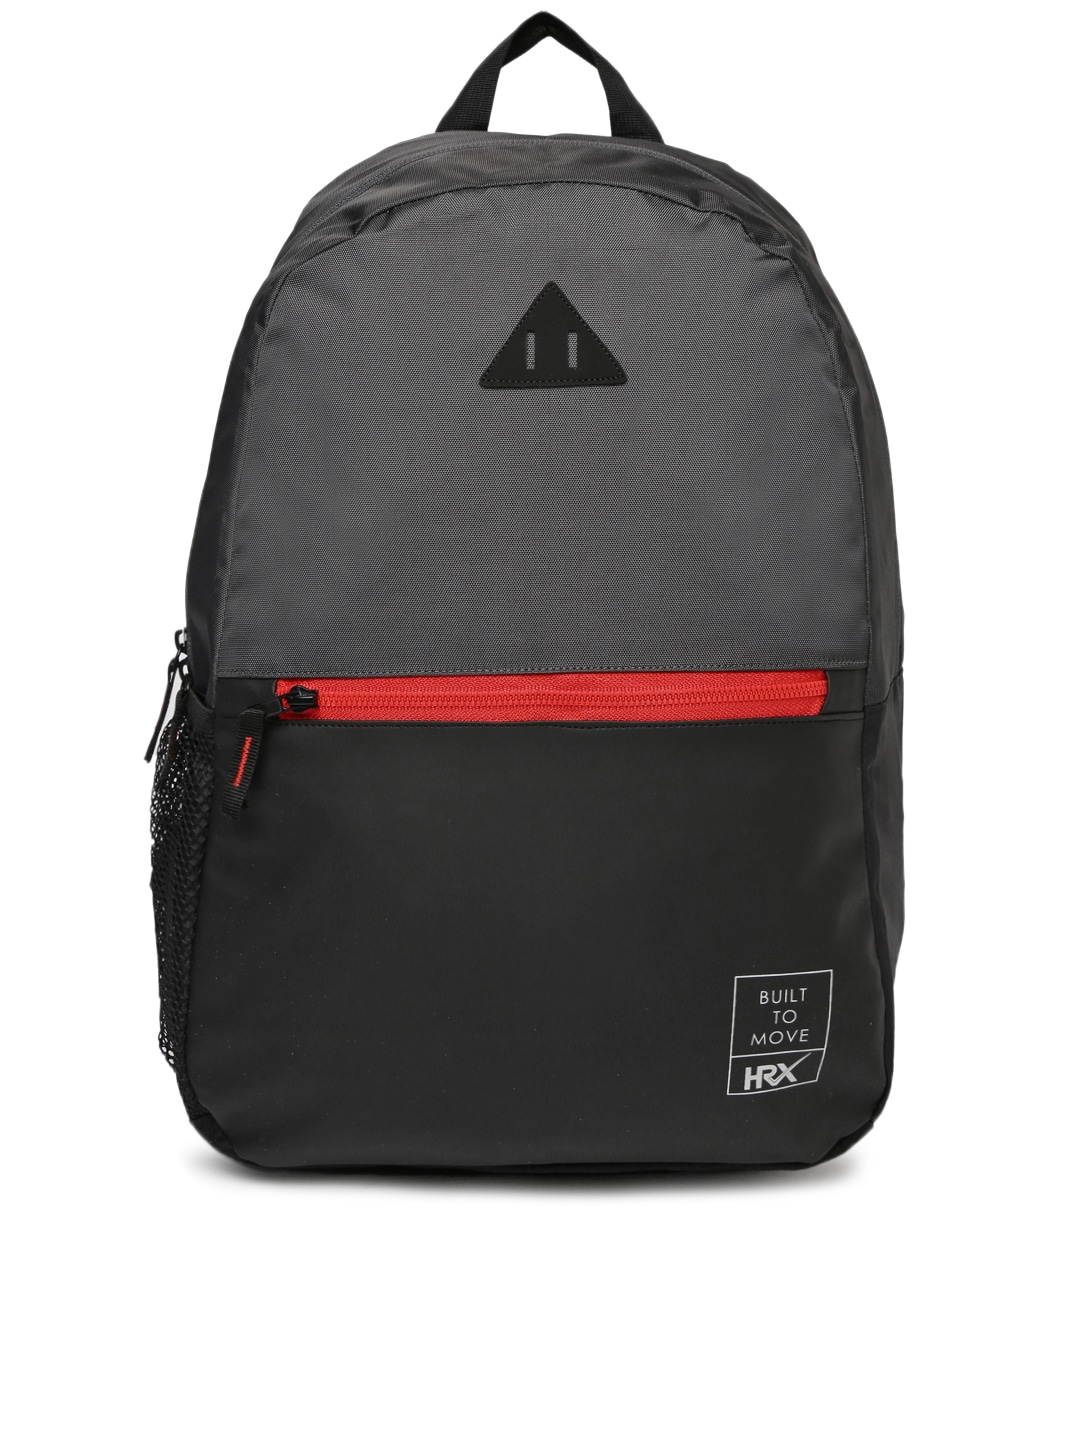 Backpacks - Buy Backpack Online for Men 480627715cbc9